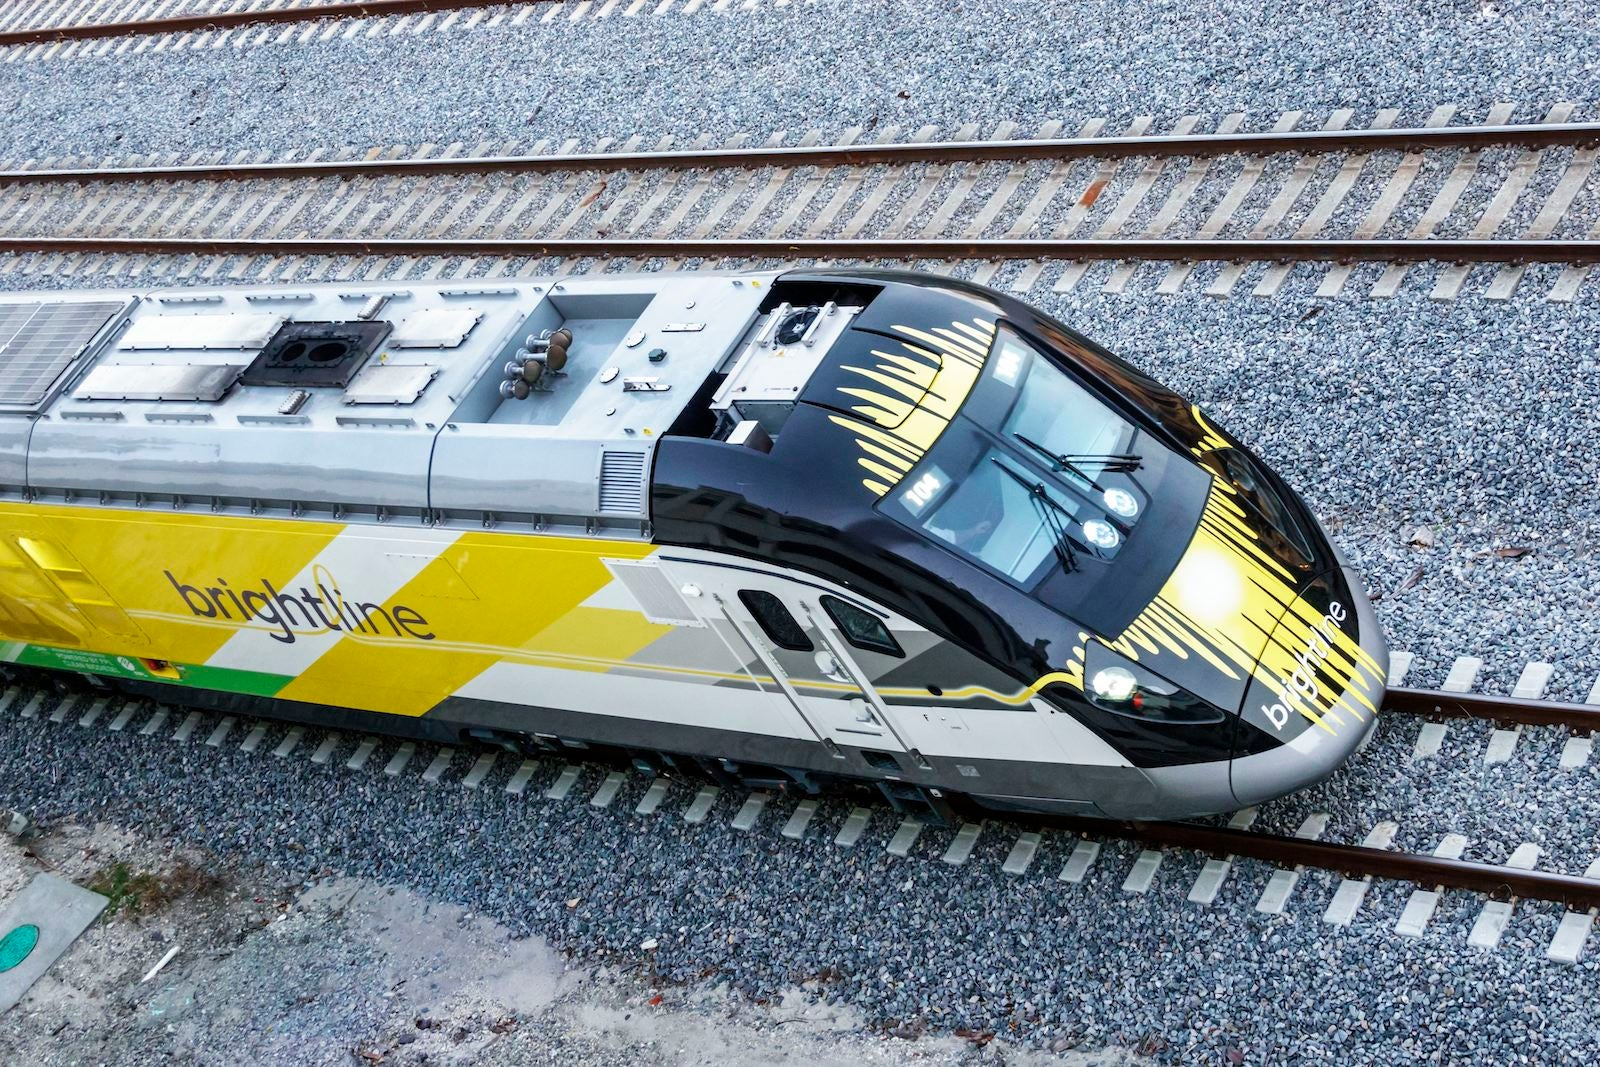 Brightline to build train station at Disney World